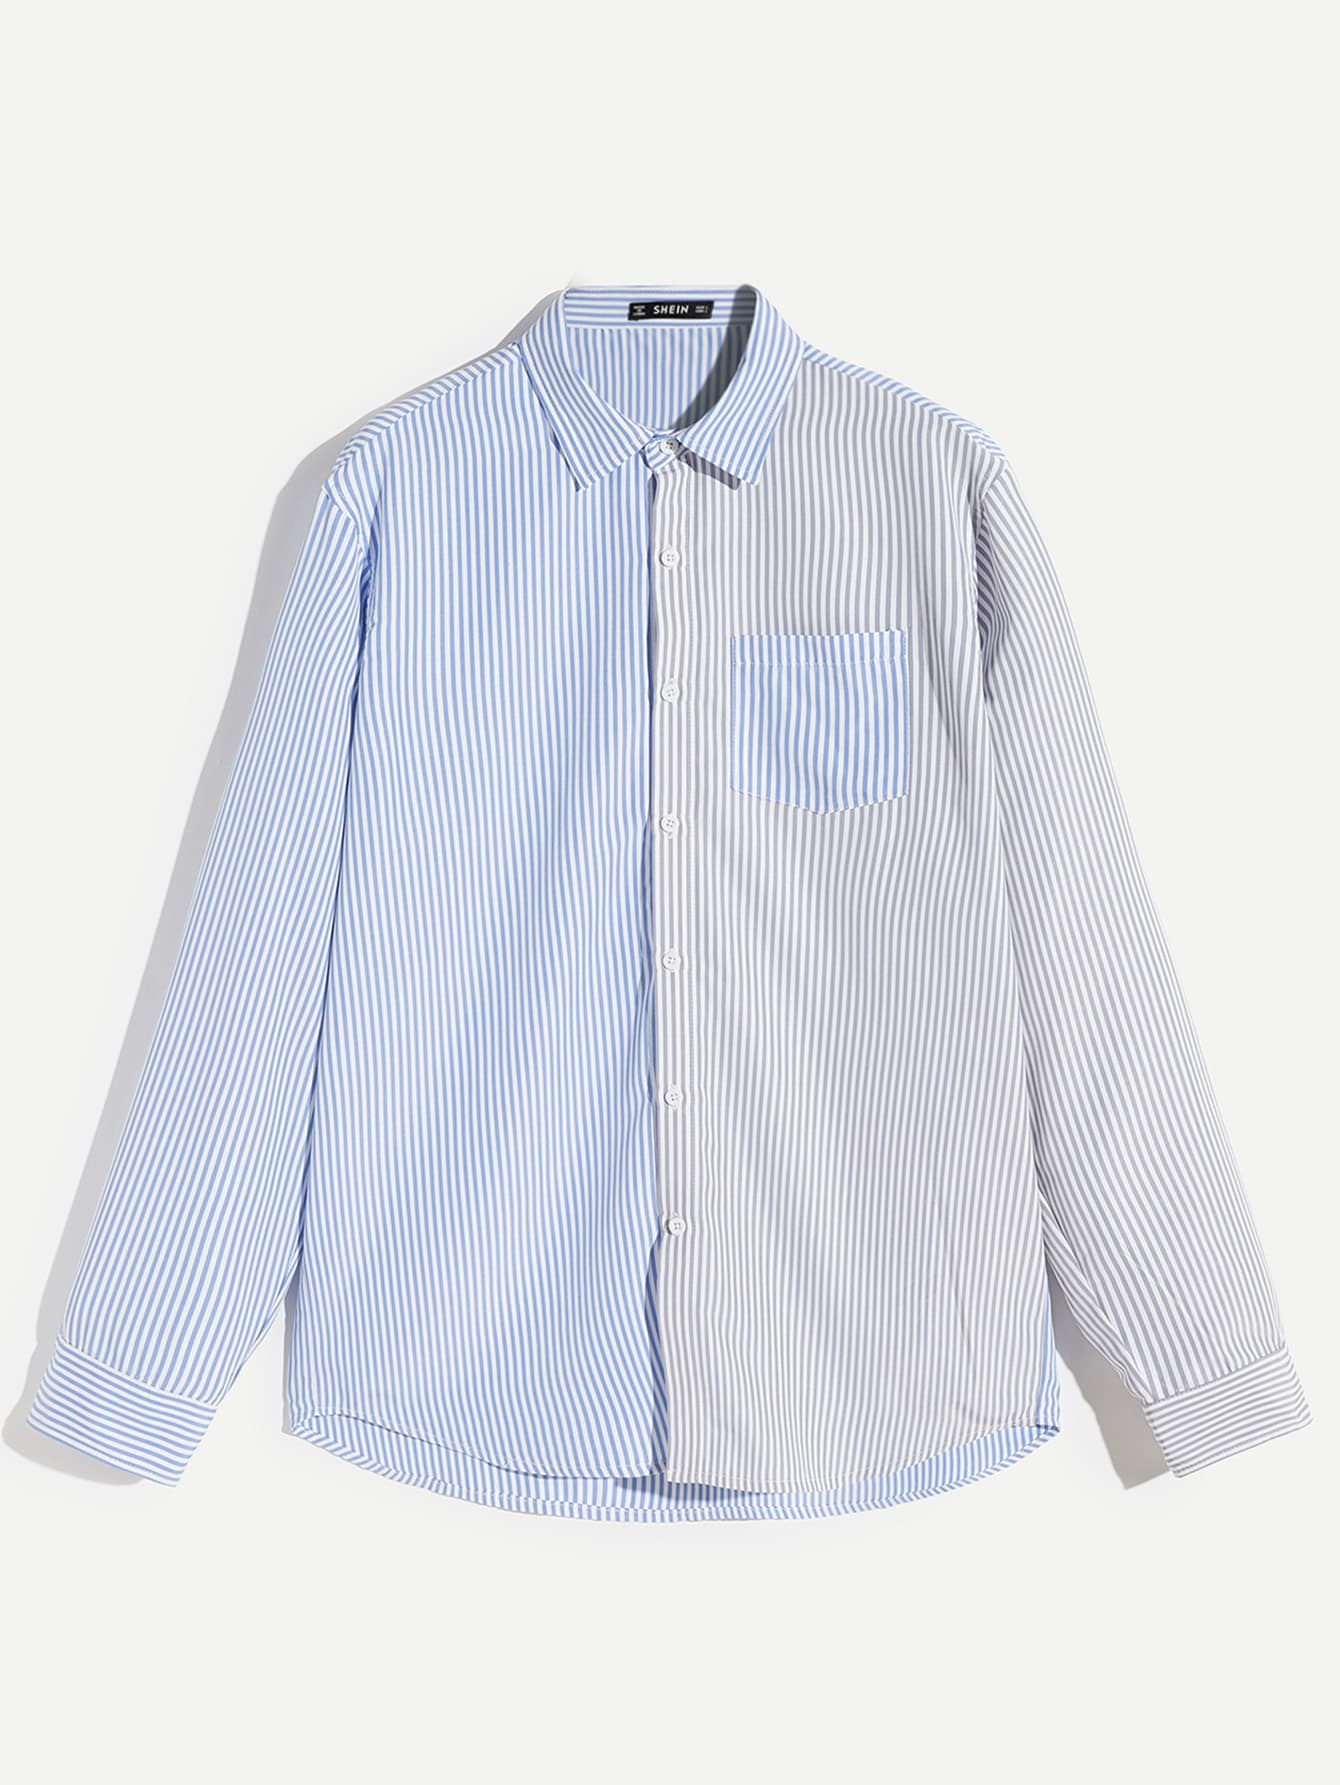 Men Pocket Patched Striped Shirt Men Pocket Patched Striped Shirt